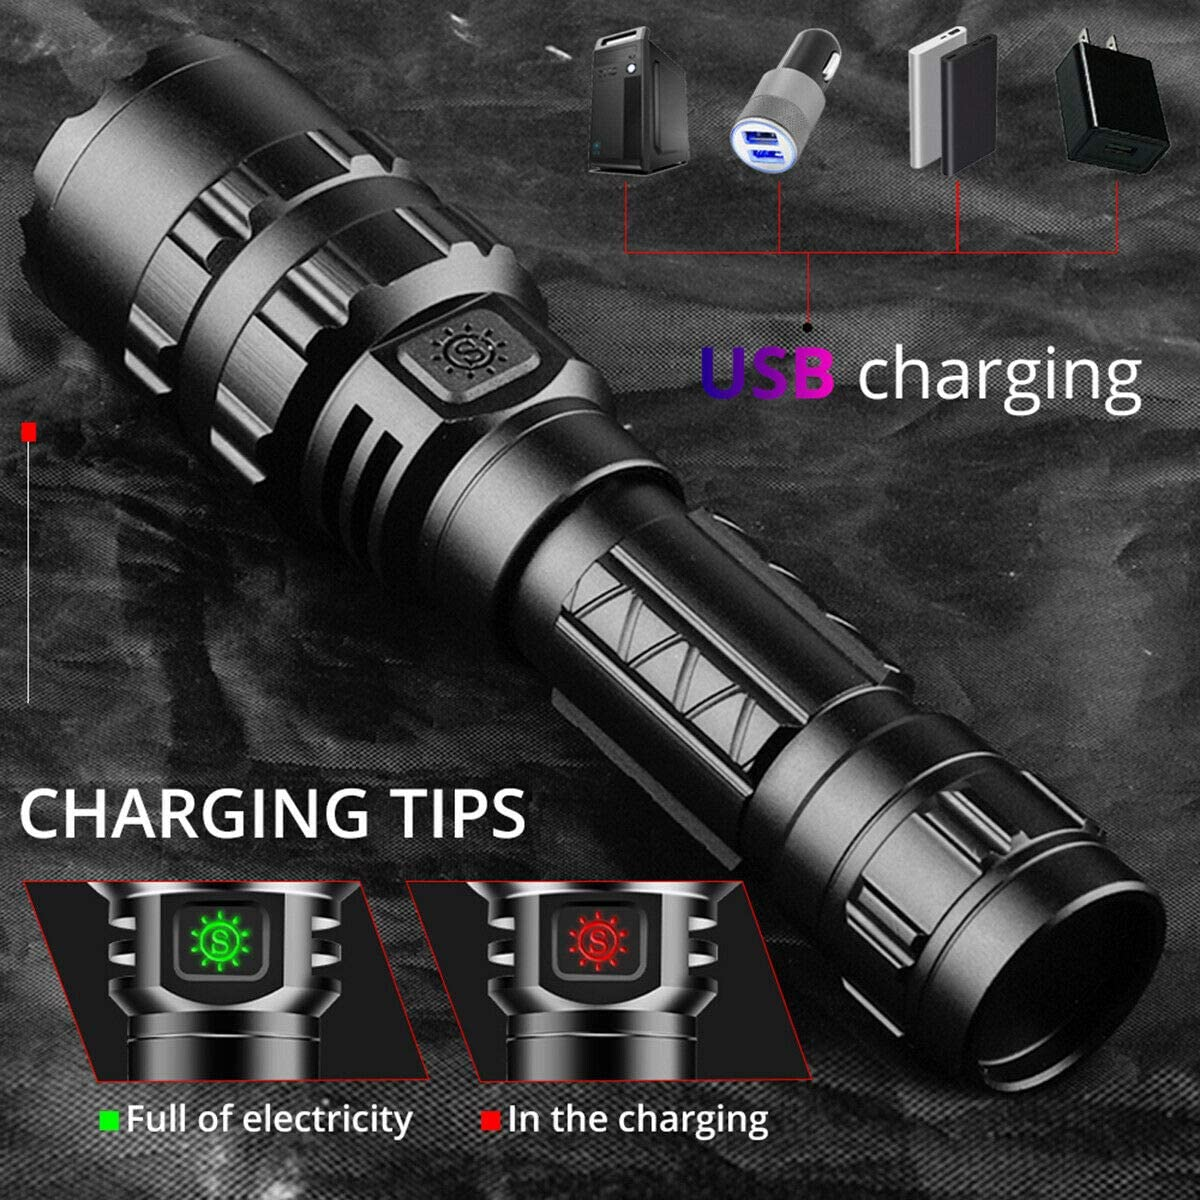 18650 Battery and Charger Included L2 Brightest LED Flashlights Rechargeable 2 Pack 3000 High Lumens Waterproof Flashlight with 5 Light Modes for Working Camping Hiking